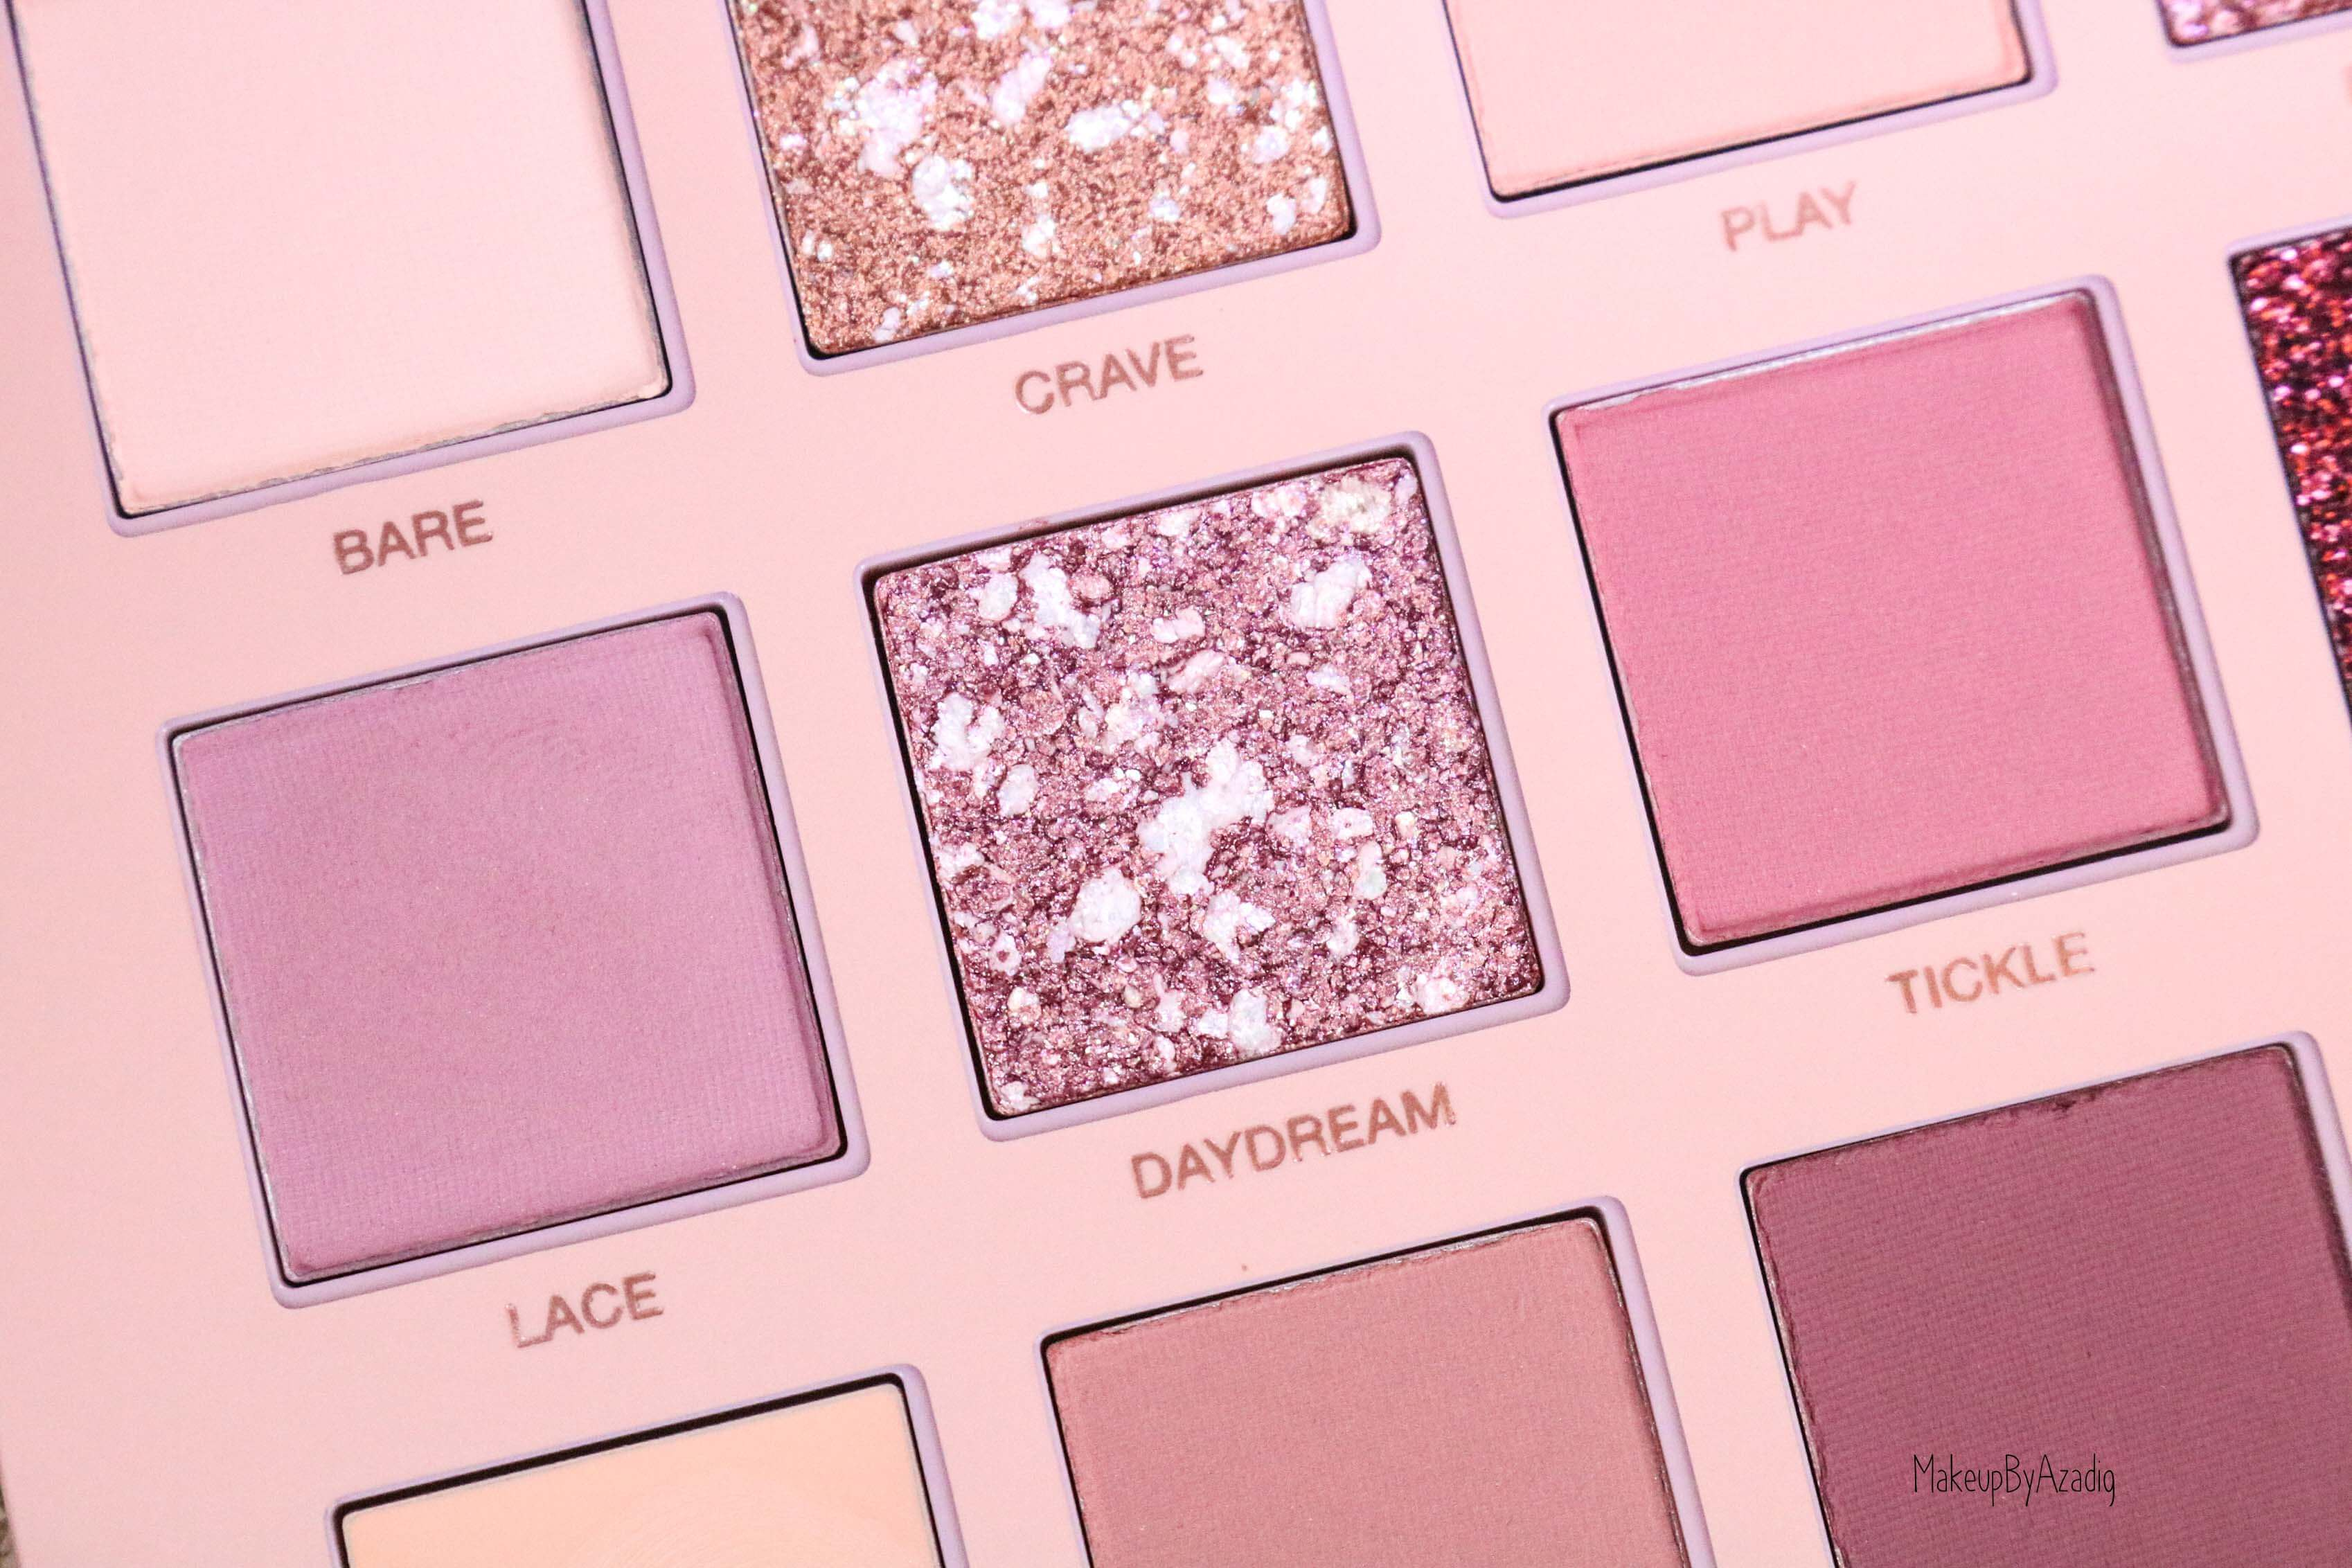 revue-review-palette-new-nude-obsessions-huda-beauty-nacre-sephora-avis-prix-swatch-makeupbyazadig-daydream